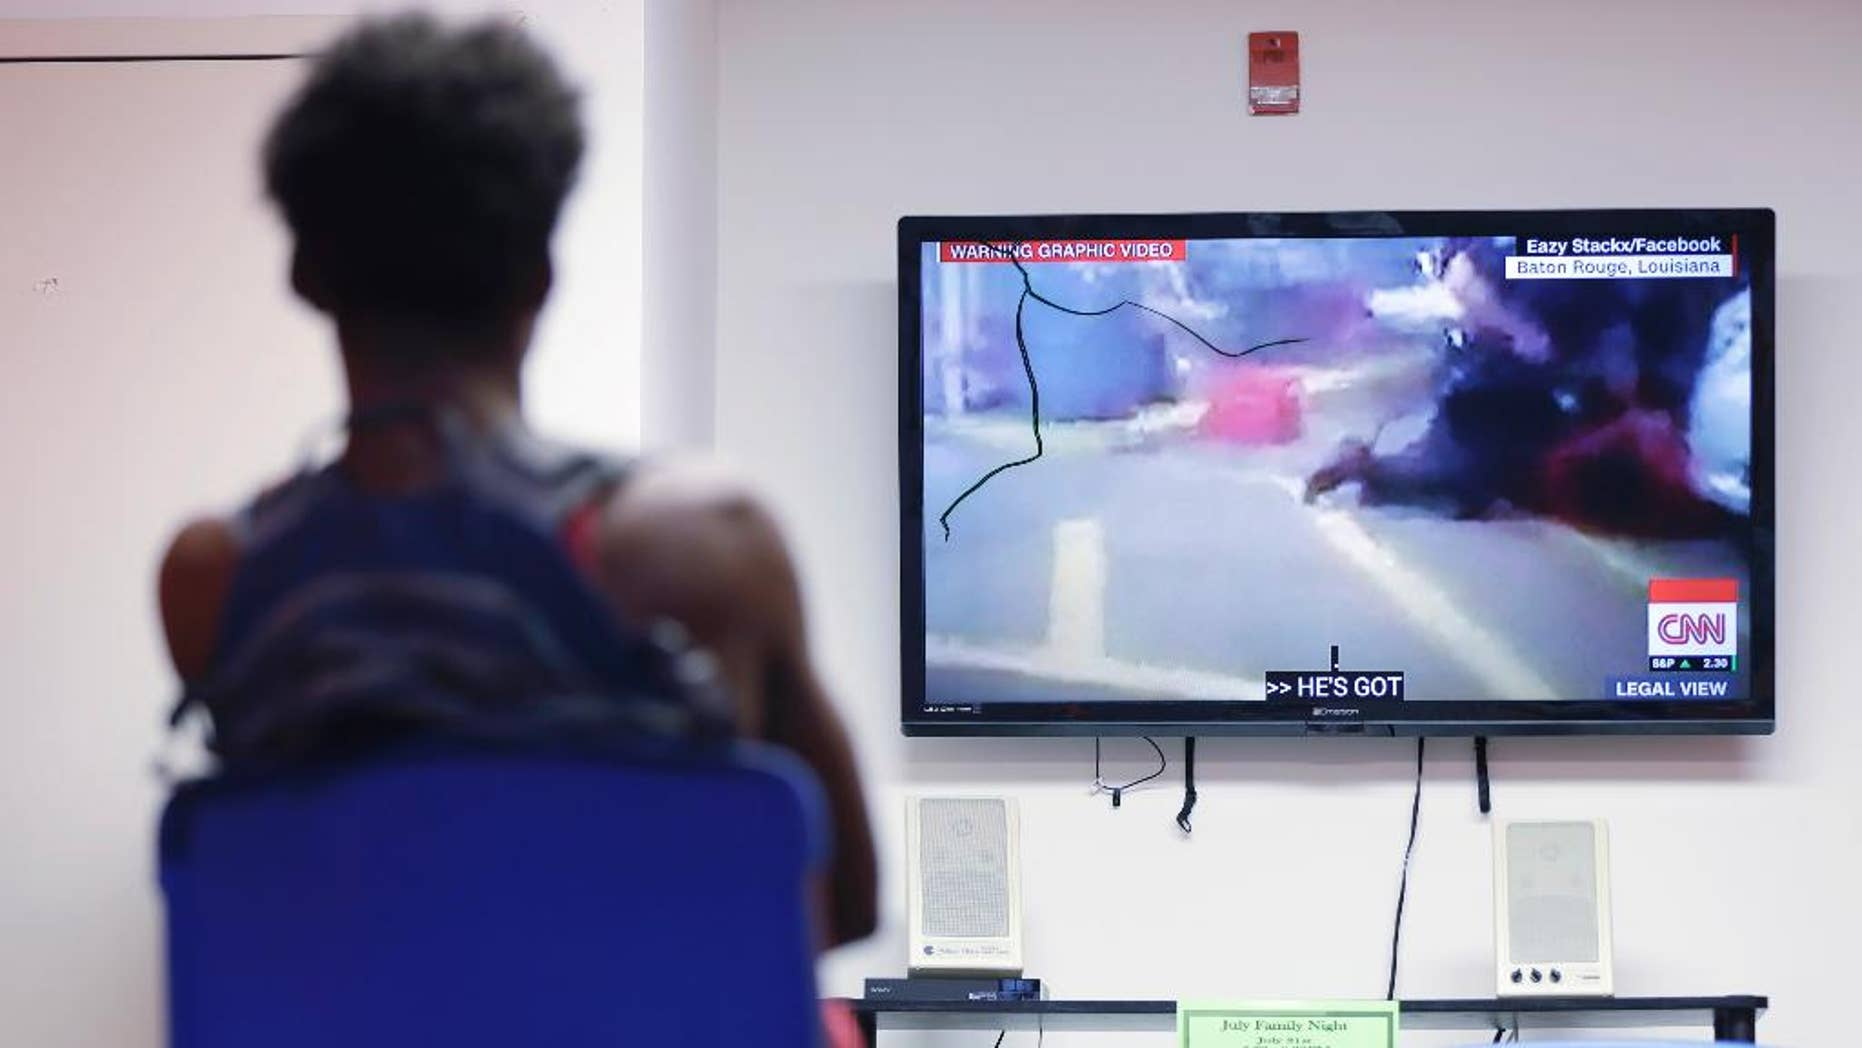 In this July 6, 2016, photo, a teen views a recording of the fatal police involved shooting in Louisiana, during a weekly mentoring meeting at The Bridge, a youth intervention and diversion program in Philadelphia. A group of black boys met with their mentors in Philadelphia to discuss one of the latest incidents at the start of what would be a week of violence ending with two black men dead and five Dallas police officers killed by a sniper. (AP Photo/Matt Rourke)